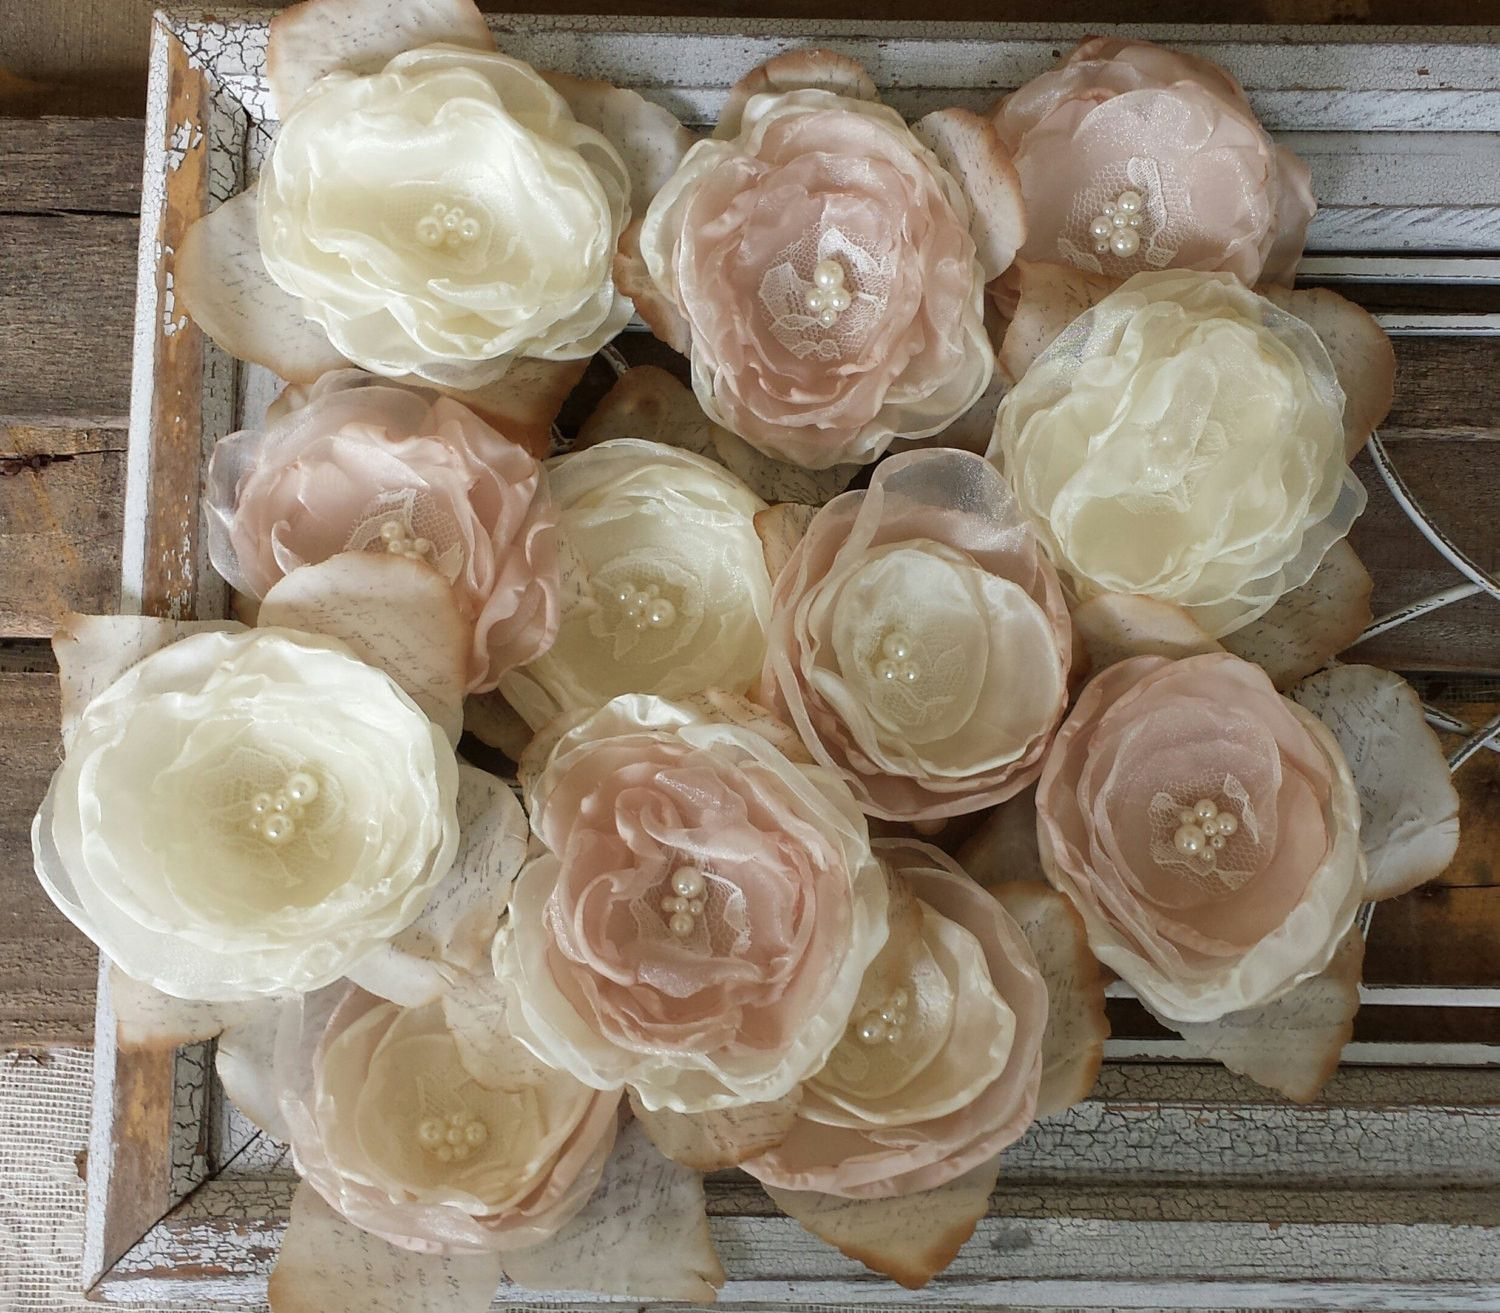 Fabric flowers are perfect for your all your wedding projects or for wedding diy fabric flowers for decorations or diy bouquet champange and ivorywedding decorwedding table decorwedding centerpiece izmirmasajfo Choice Image